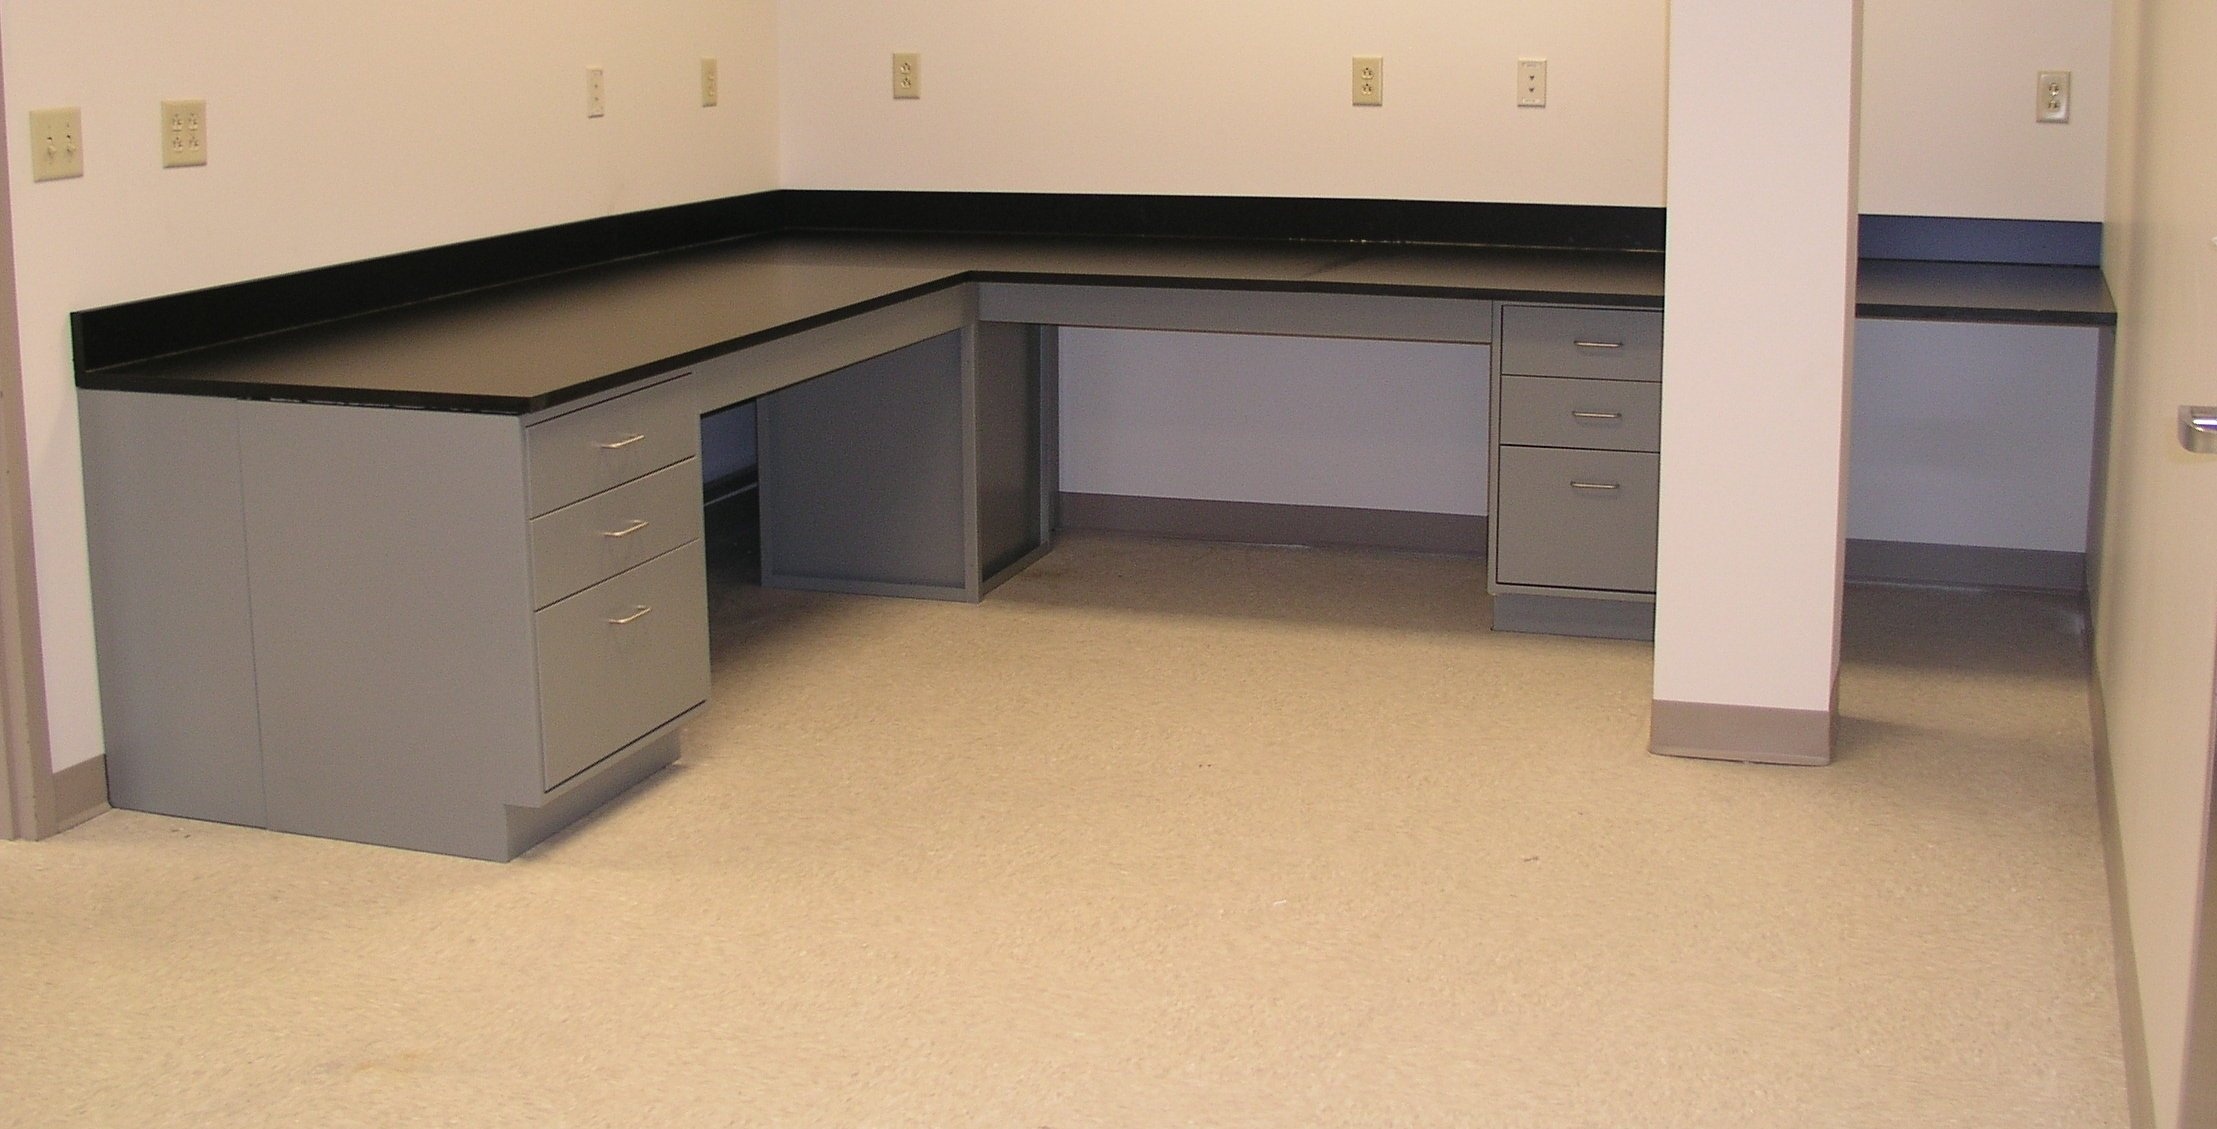 sitting_height_lab_cabinets